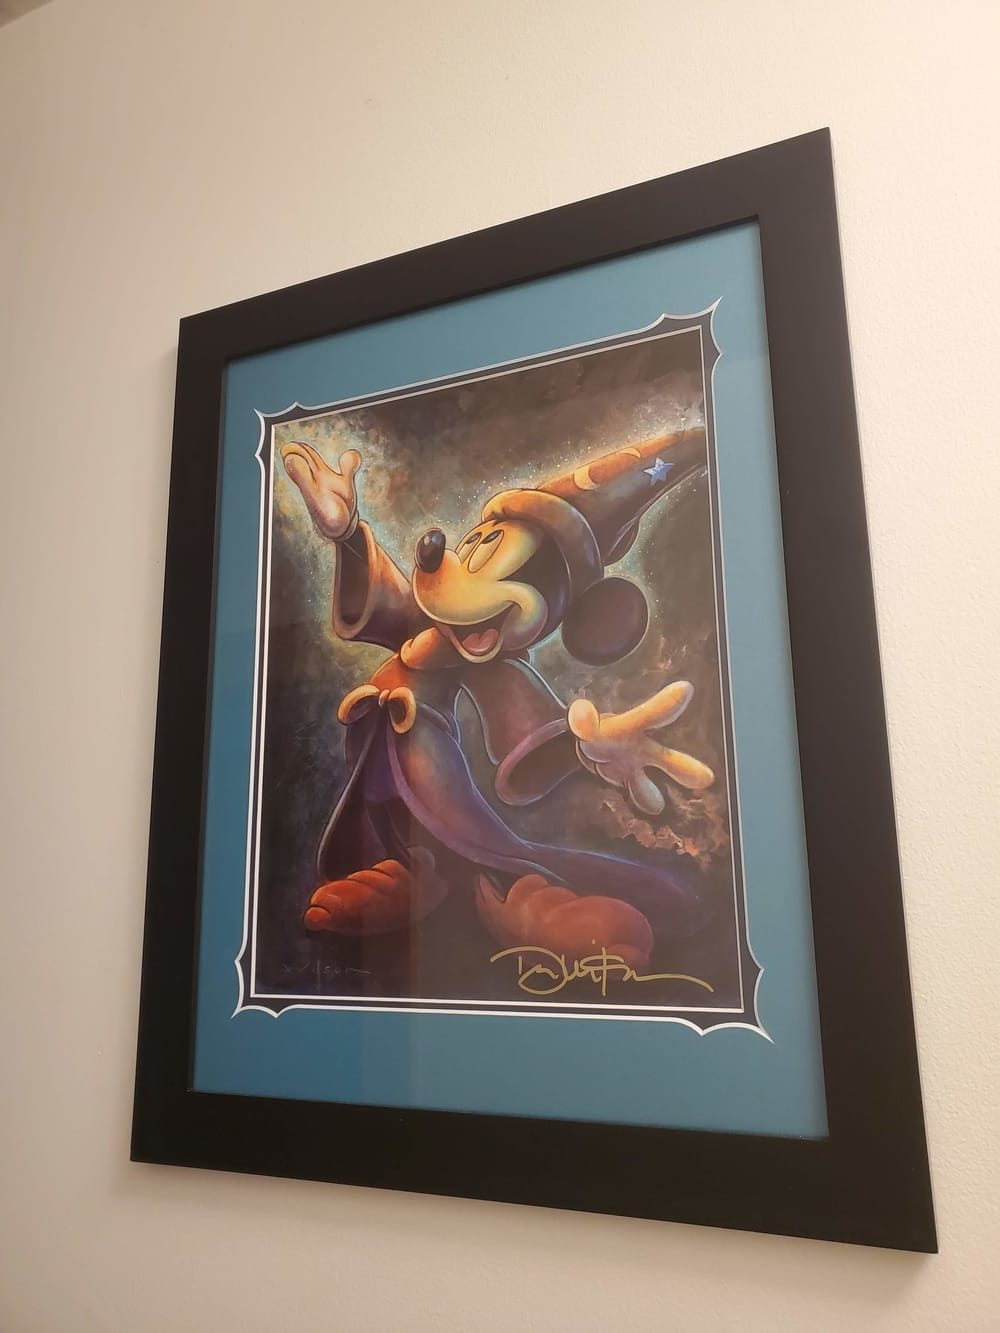 Buying Art at Disney World: Everything You Need to Know Tips 3